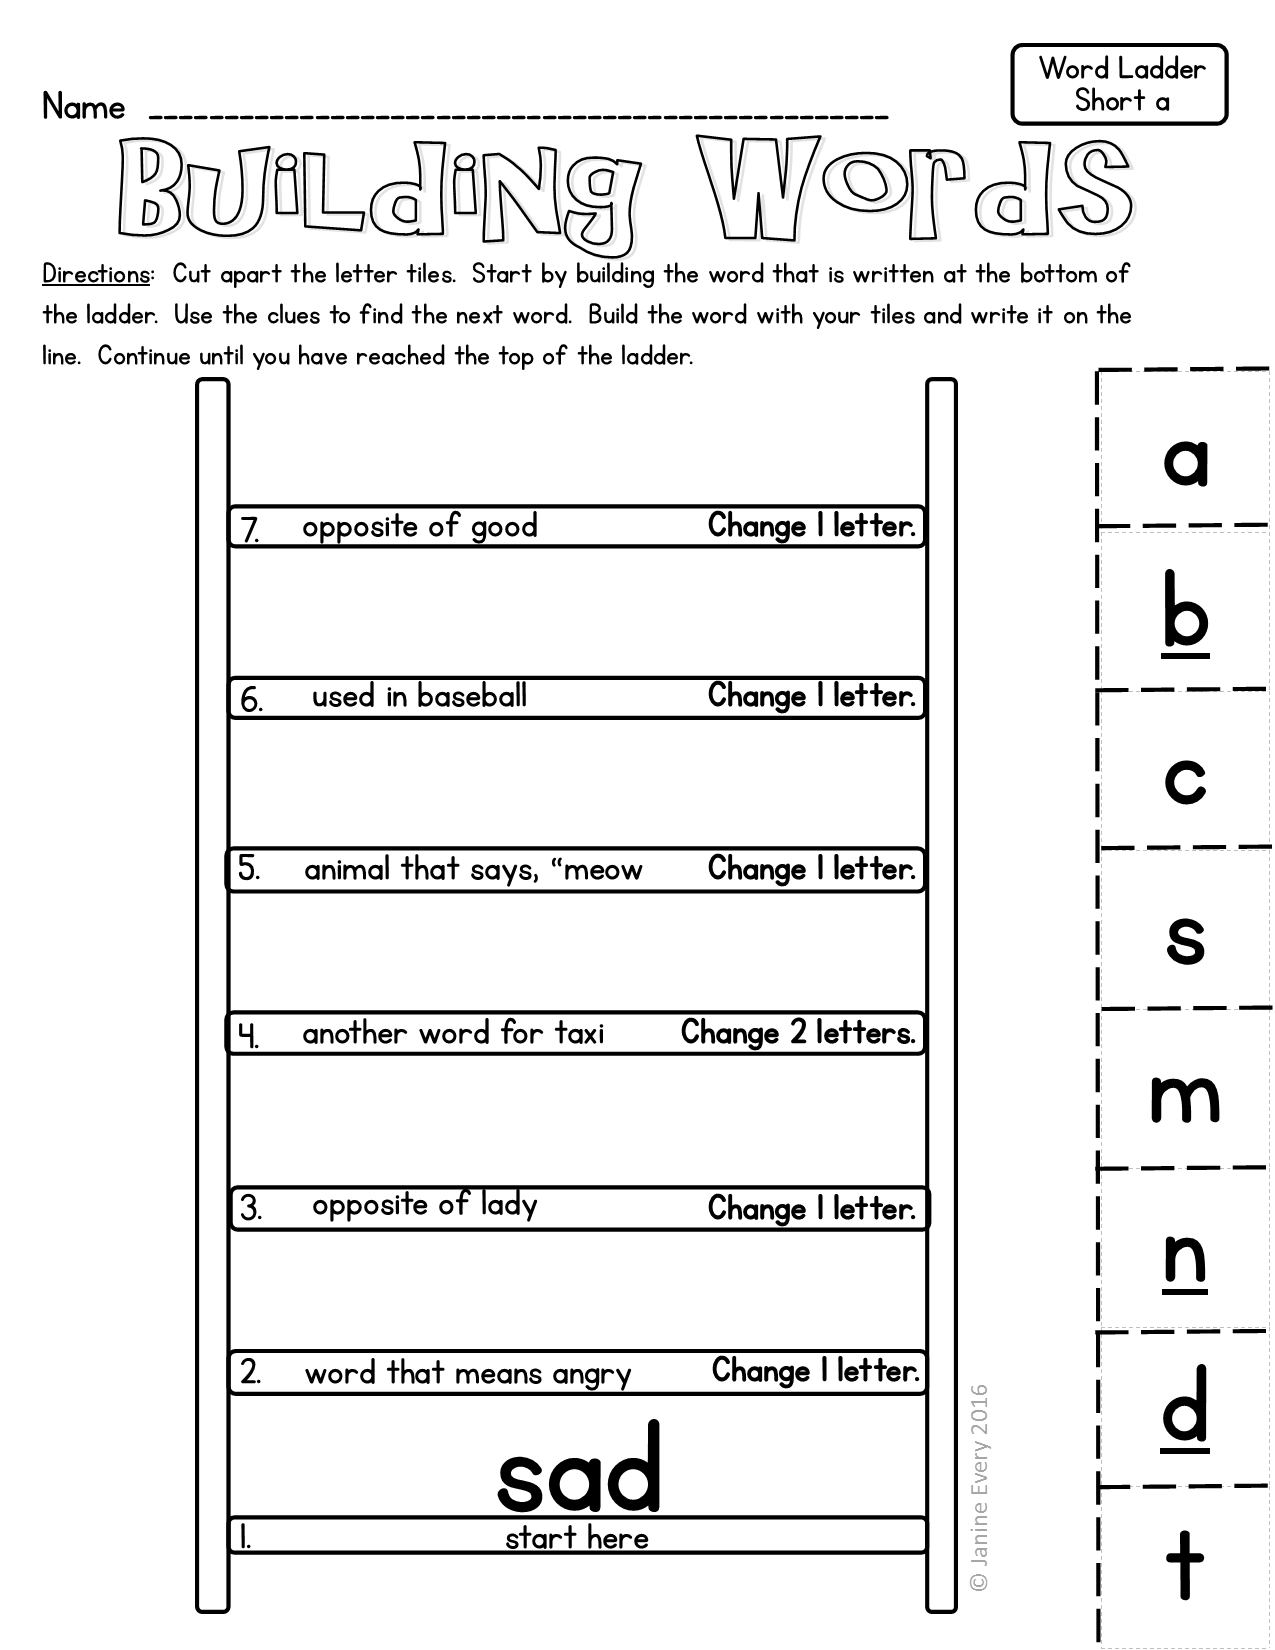 Building Words With Word Ladders - Great For Building